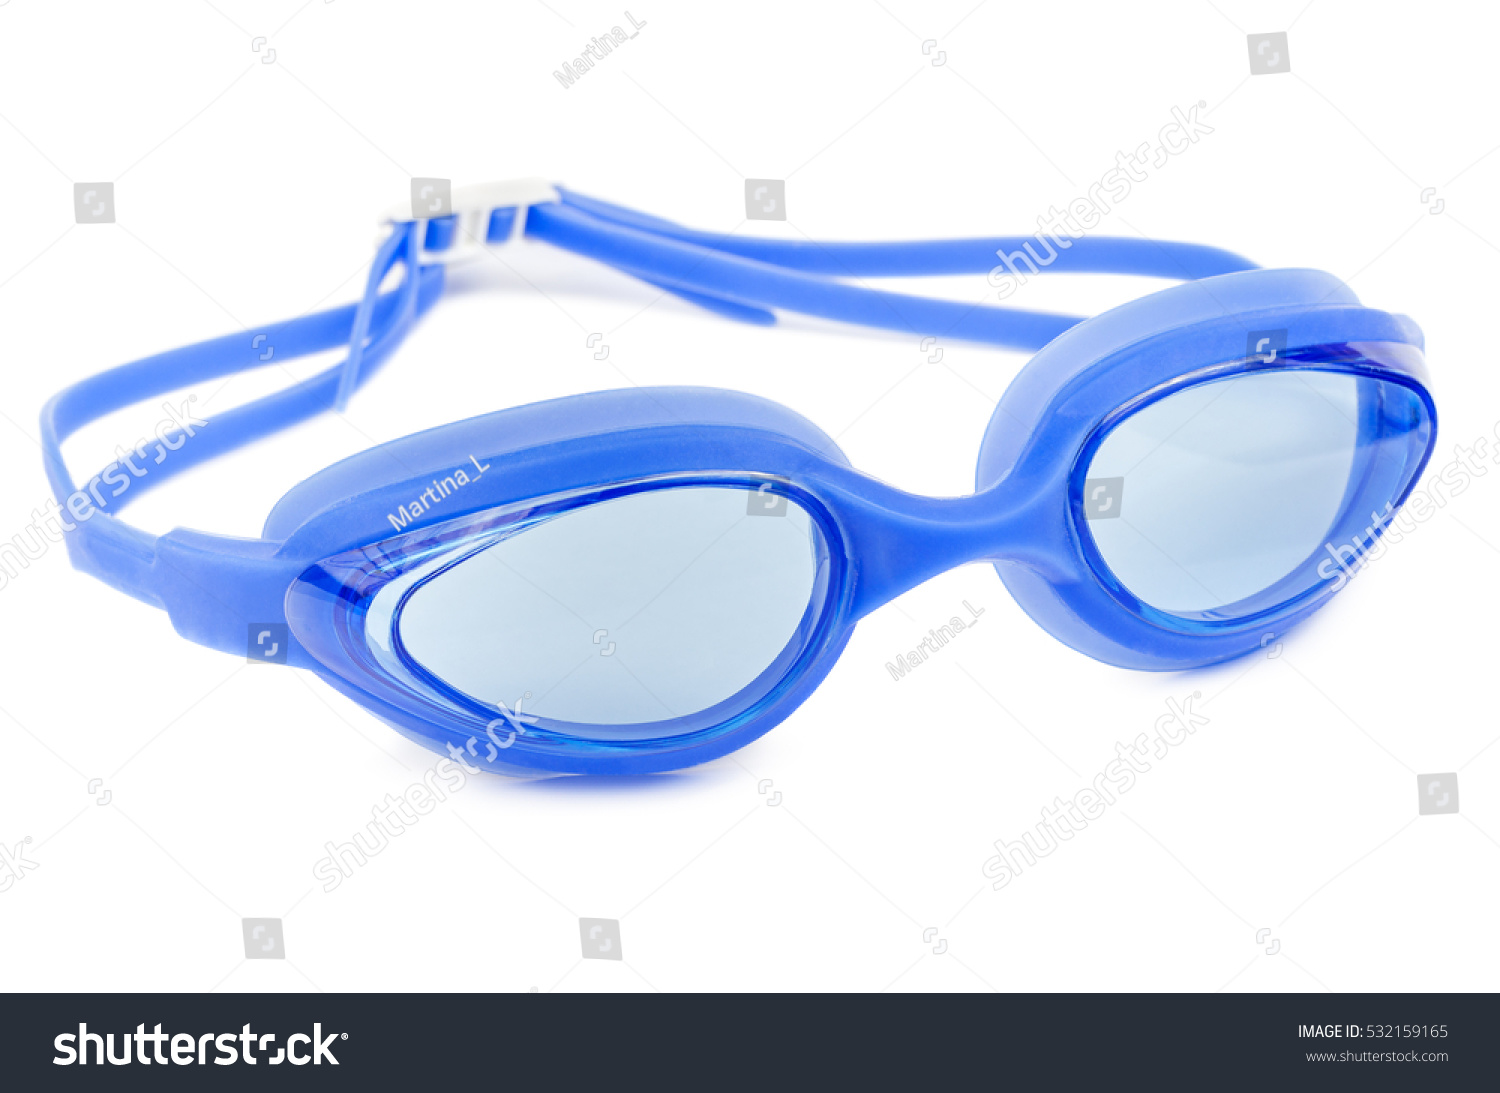 Professional glasses for swimming isolated on a white background. Blue swim goggle. #532159165